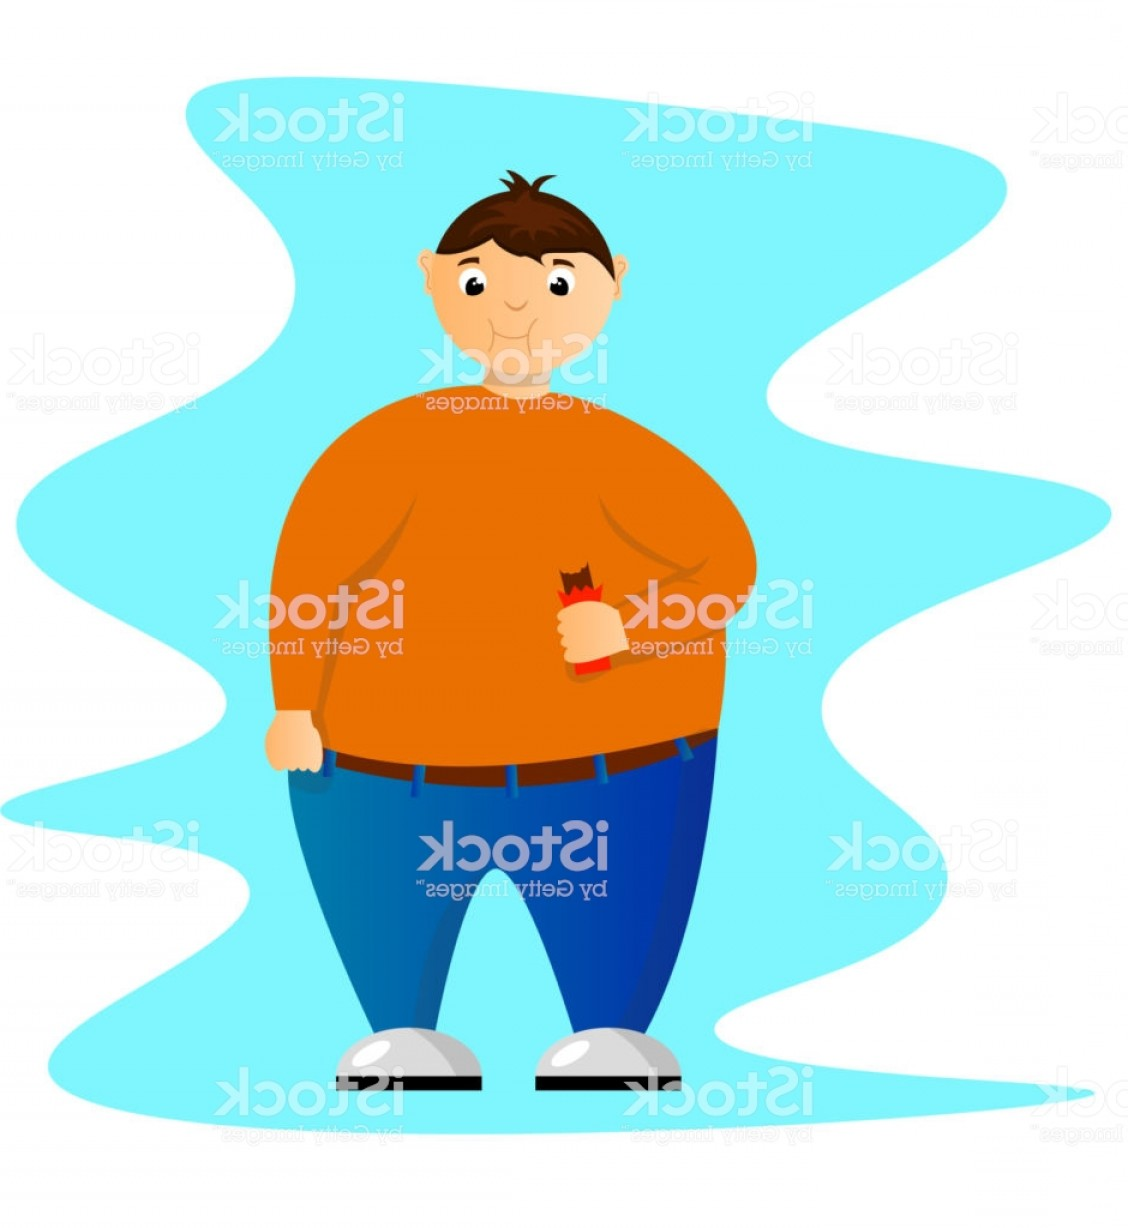 Fat Boy Logo Vector Art: Fat Boy Character In Orange Shirt With A Chocolate Bar Gm